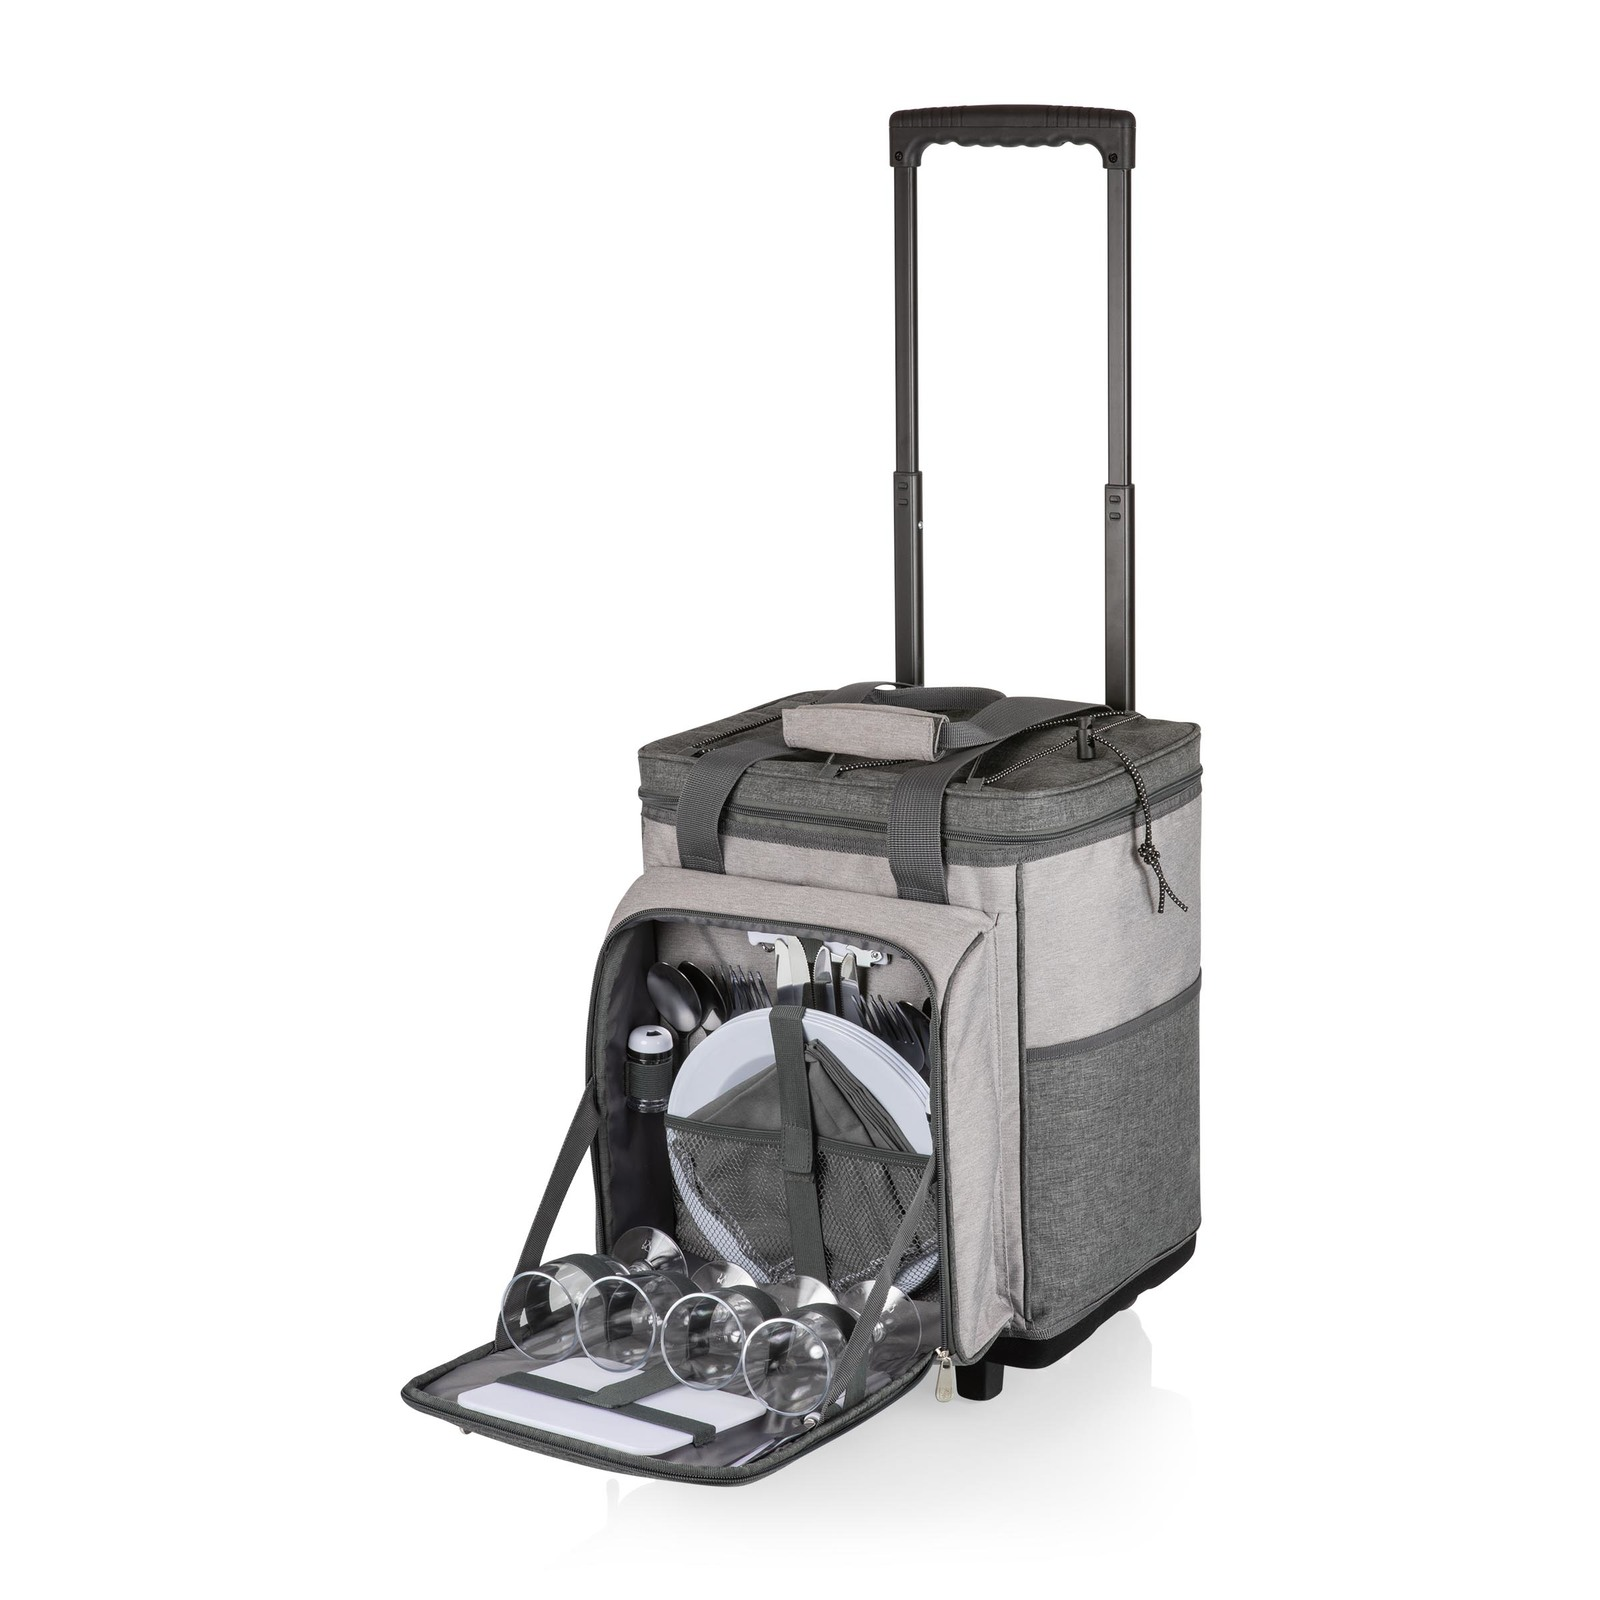 Picnic Time: Rolling Picnic Cooler (Heathered Gray) image